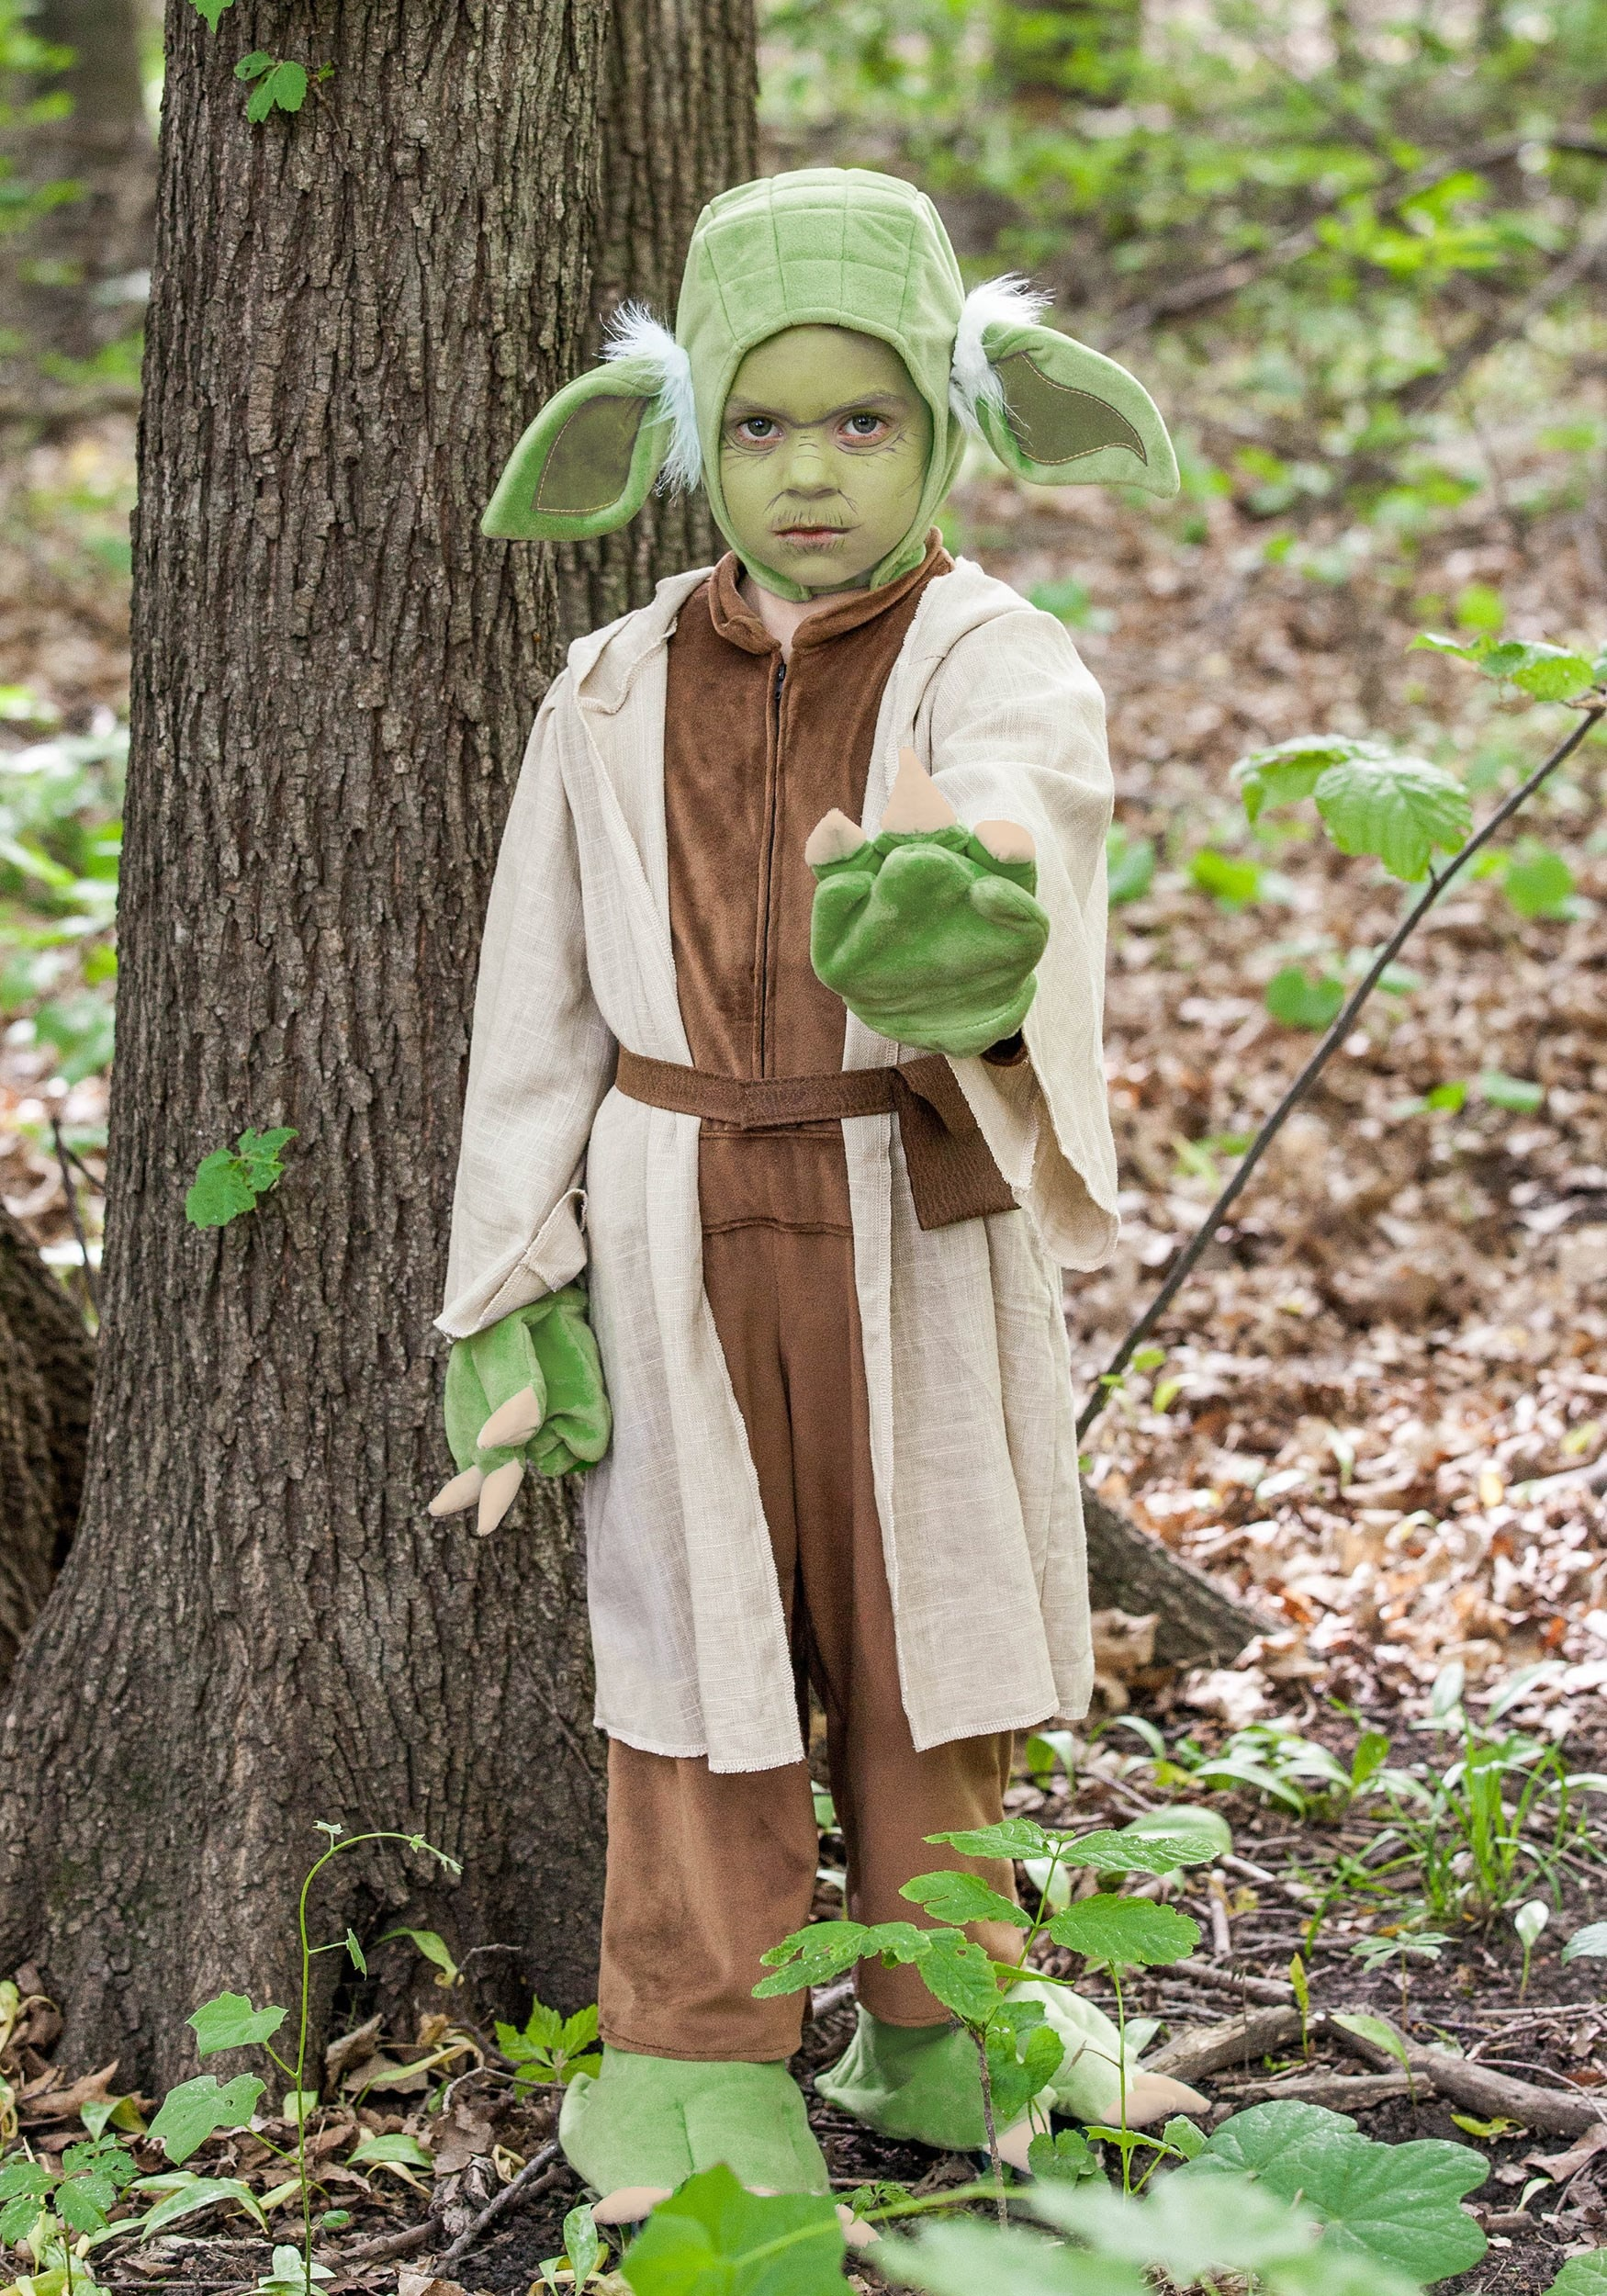 Star wars costumes halloweencostumes star wars yoda toddler costume solutioingenieria Gallery